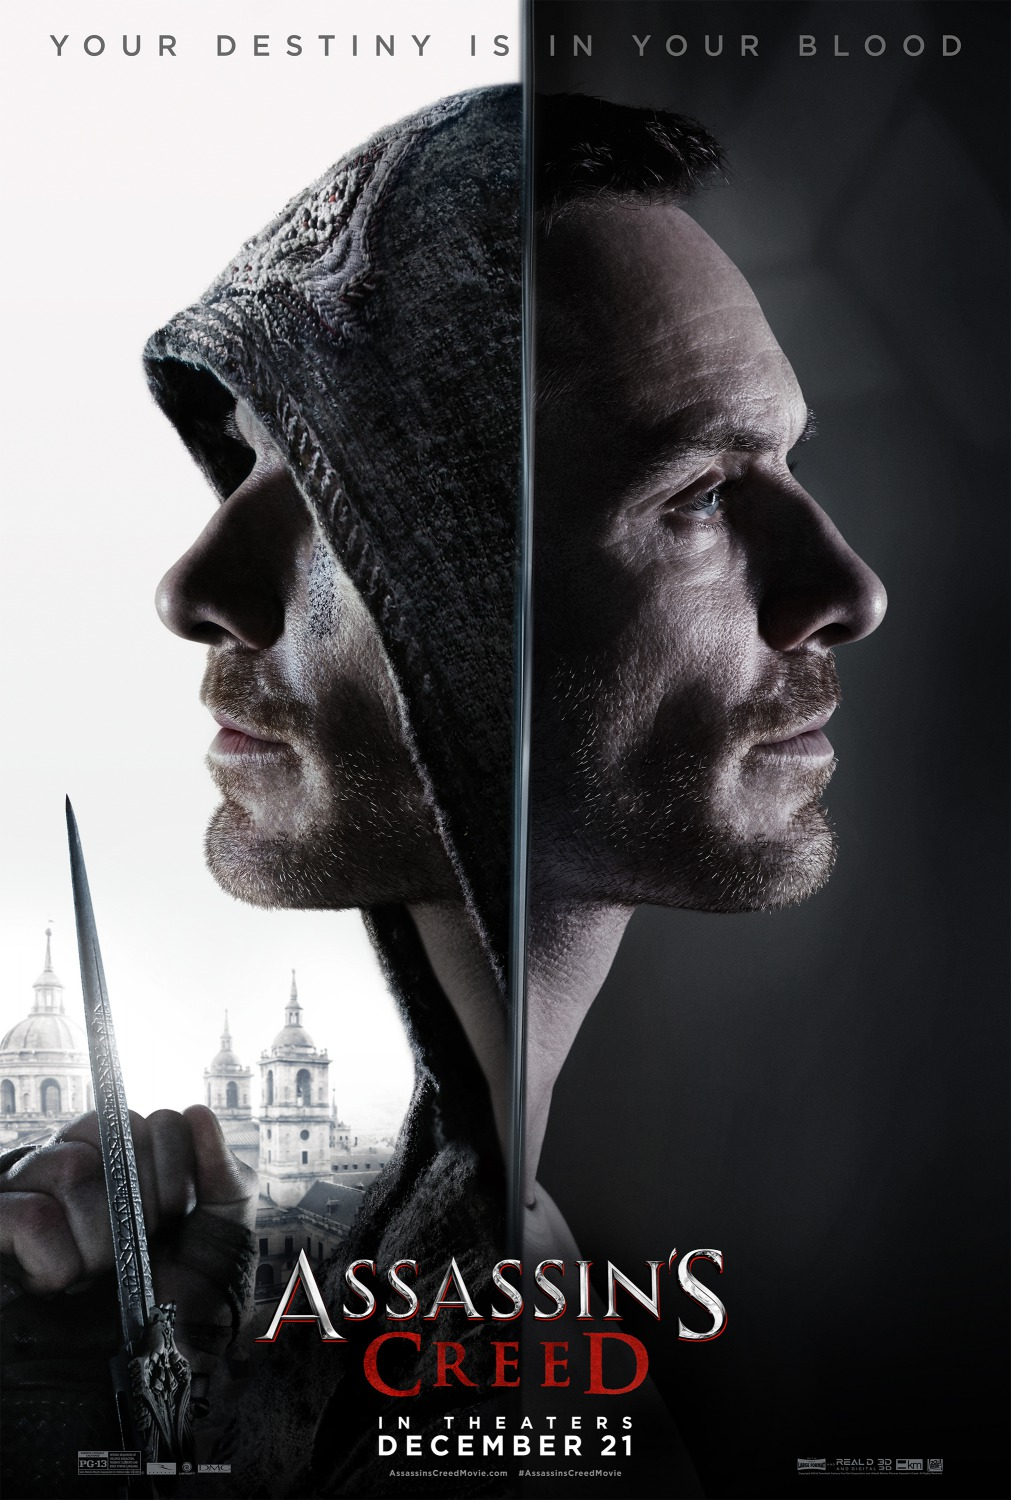 Assassin's Creed tráiler final.